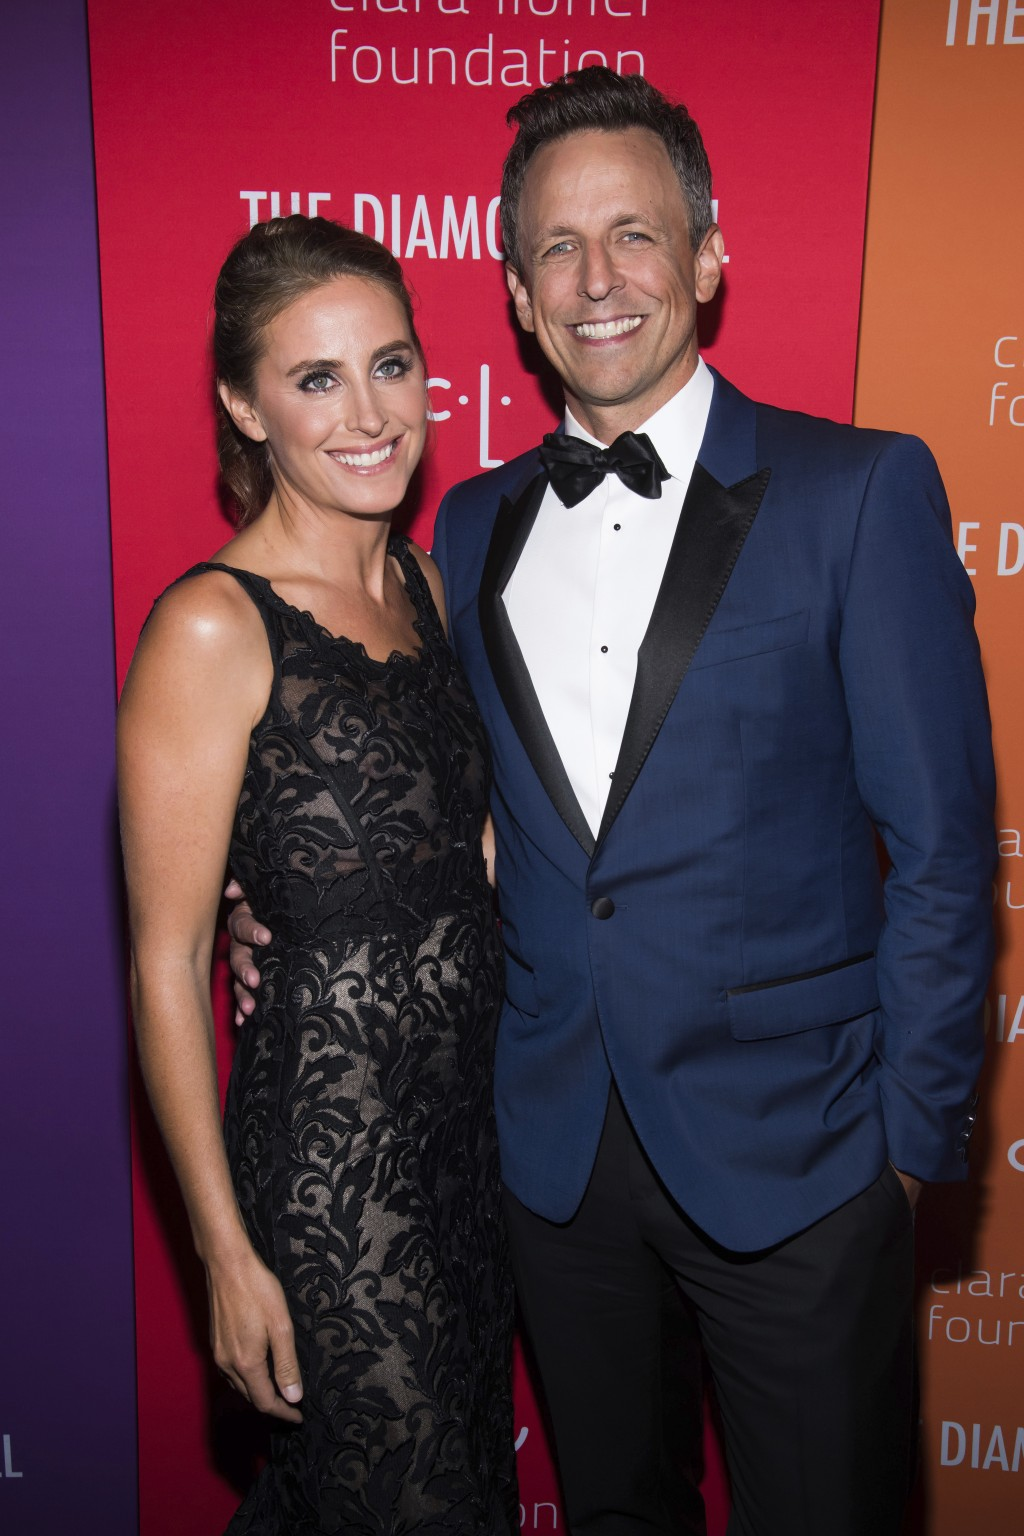 Alexi Ashe and Seth Meyers attend the 5th annual Diamond Ball benefit gala at Cipriani Wall Street on Thursday, Sept. 12, 2019, in New York. (Photo by...